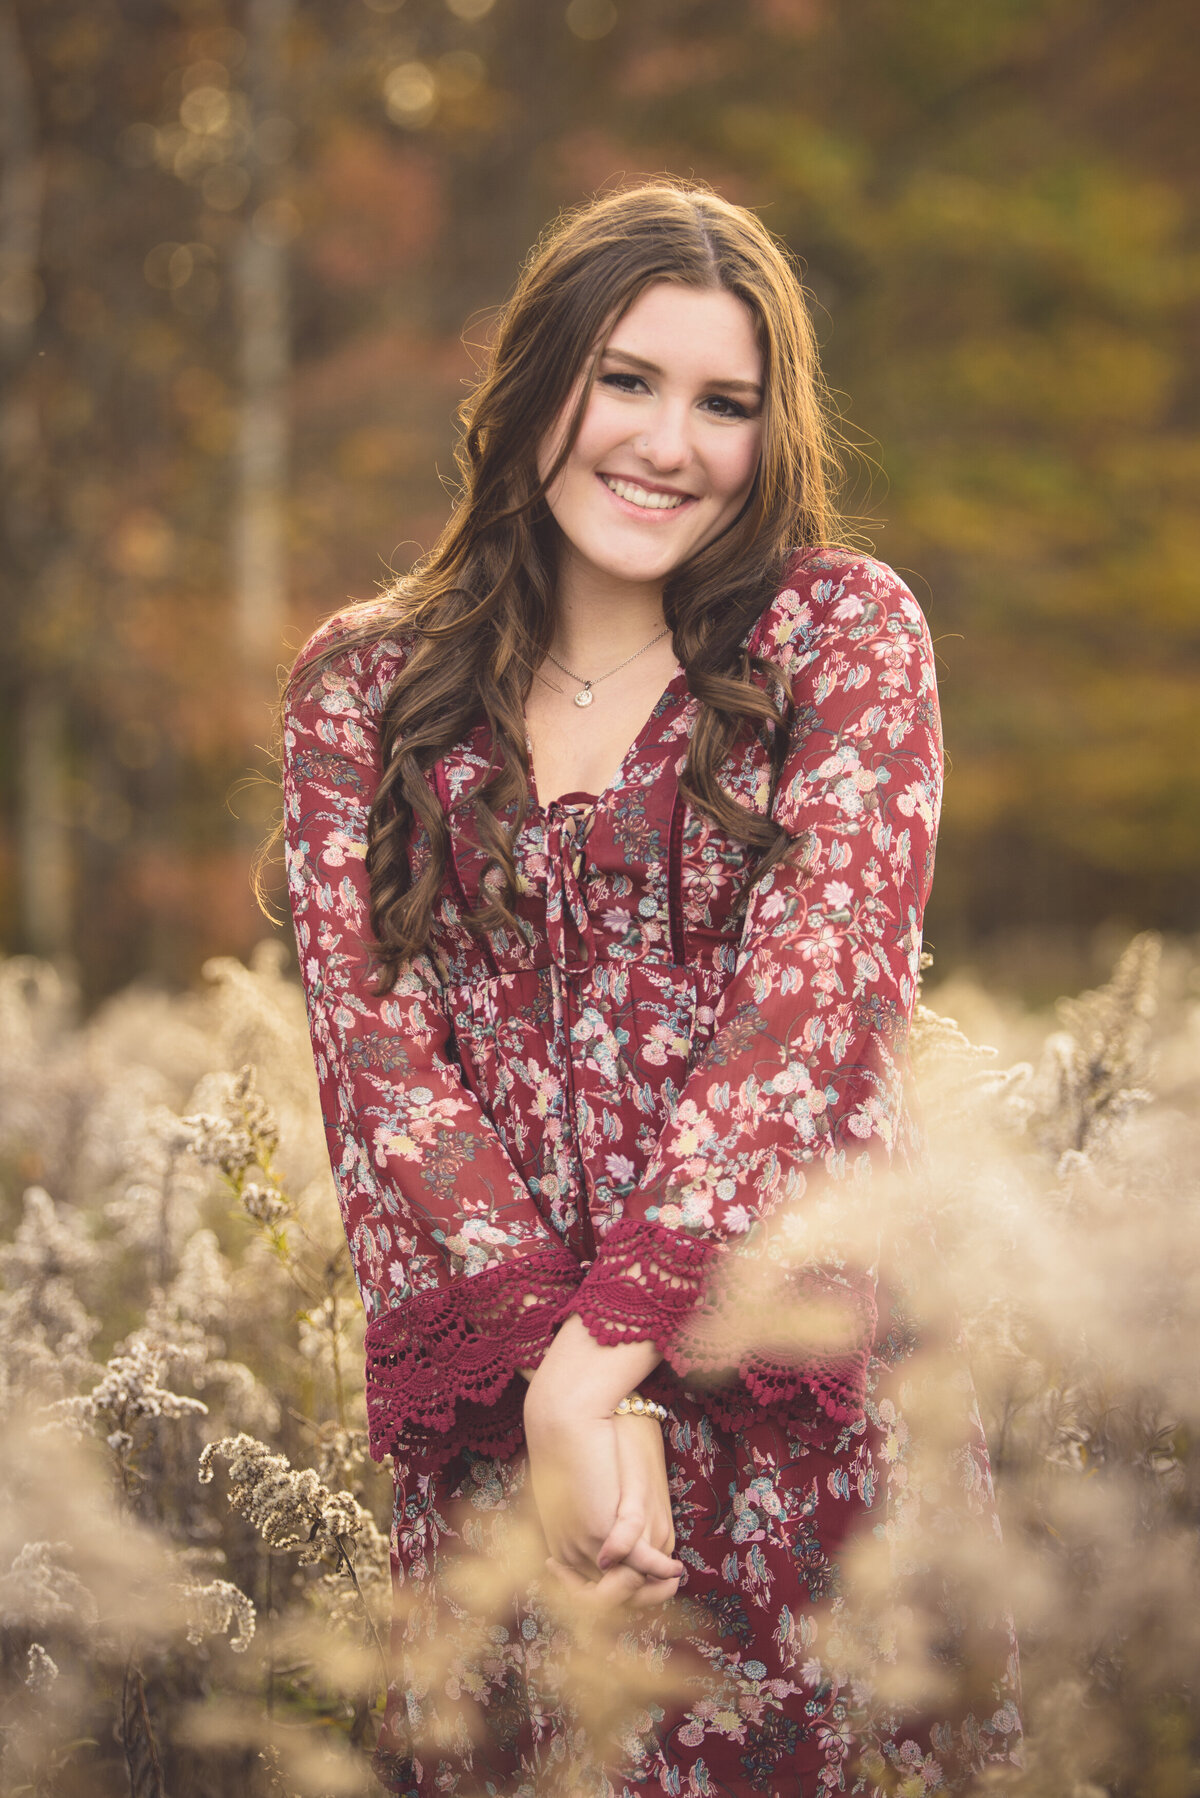 Grand-Rapids-MI-Outdoor-Senior-Pictures-17